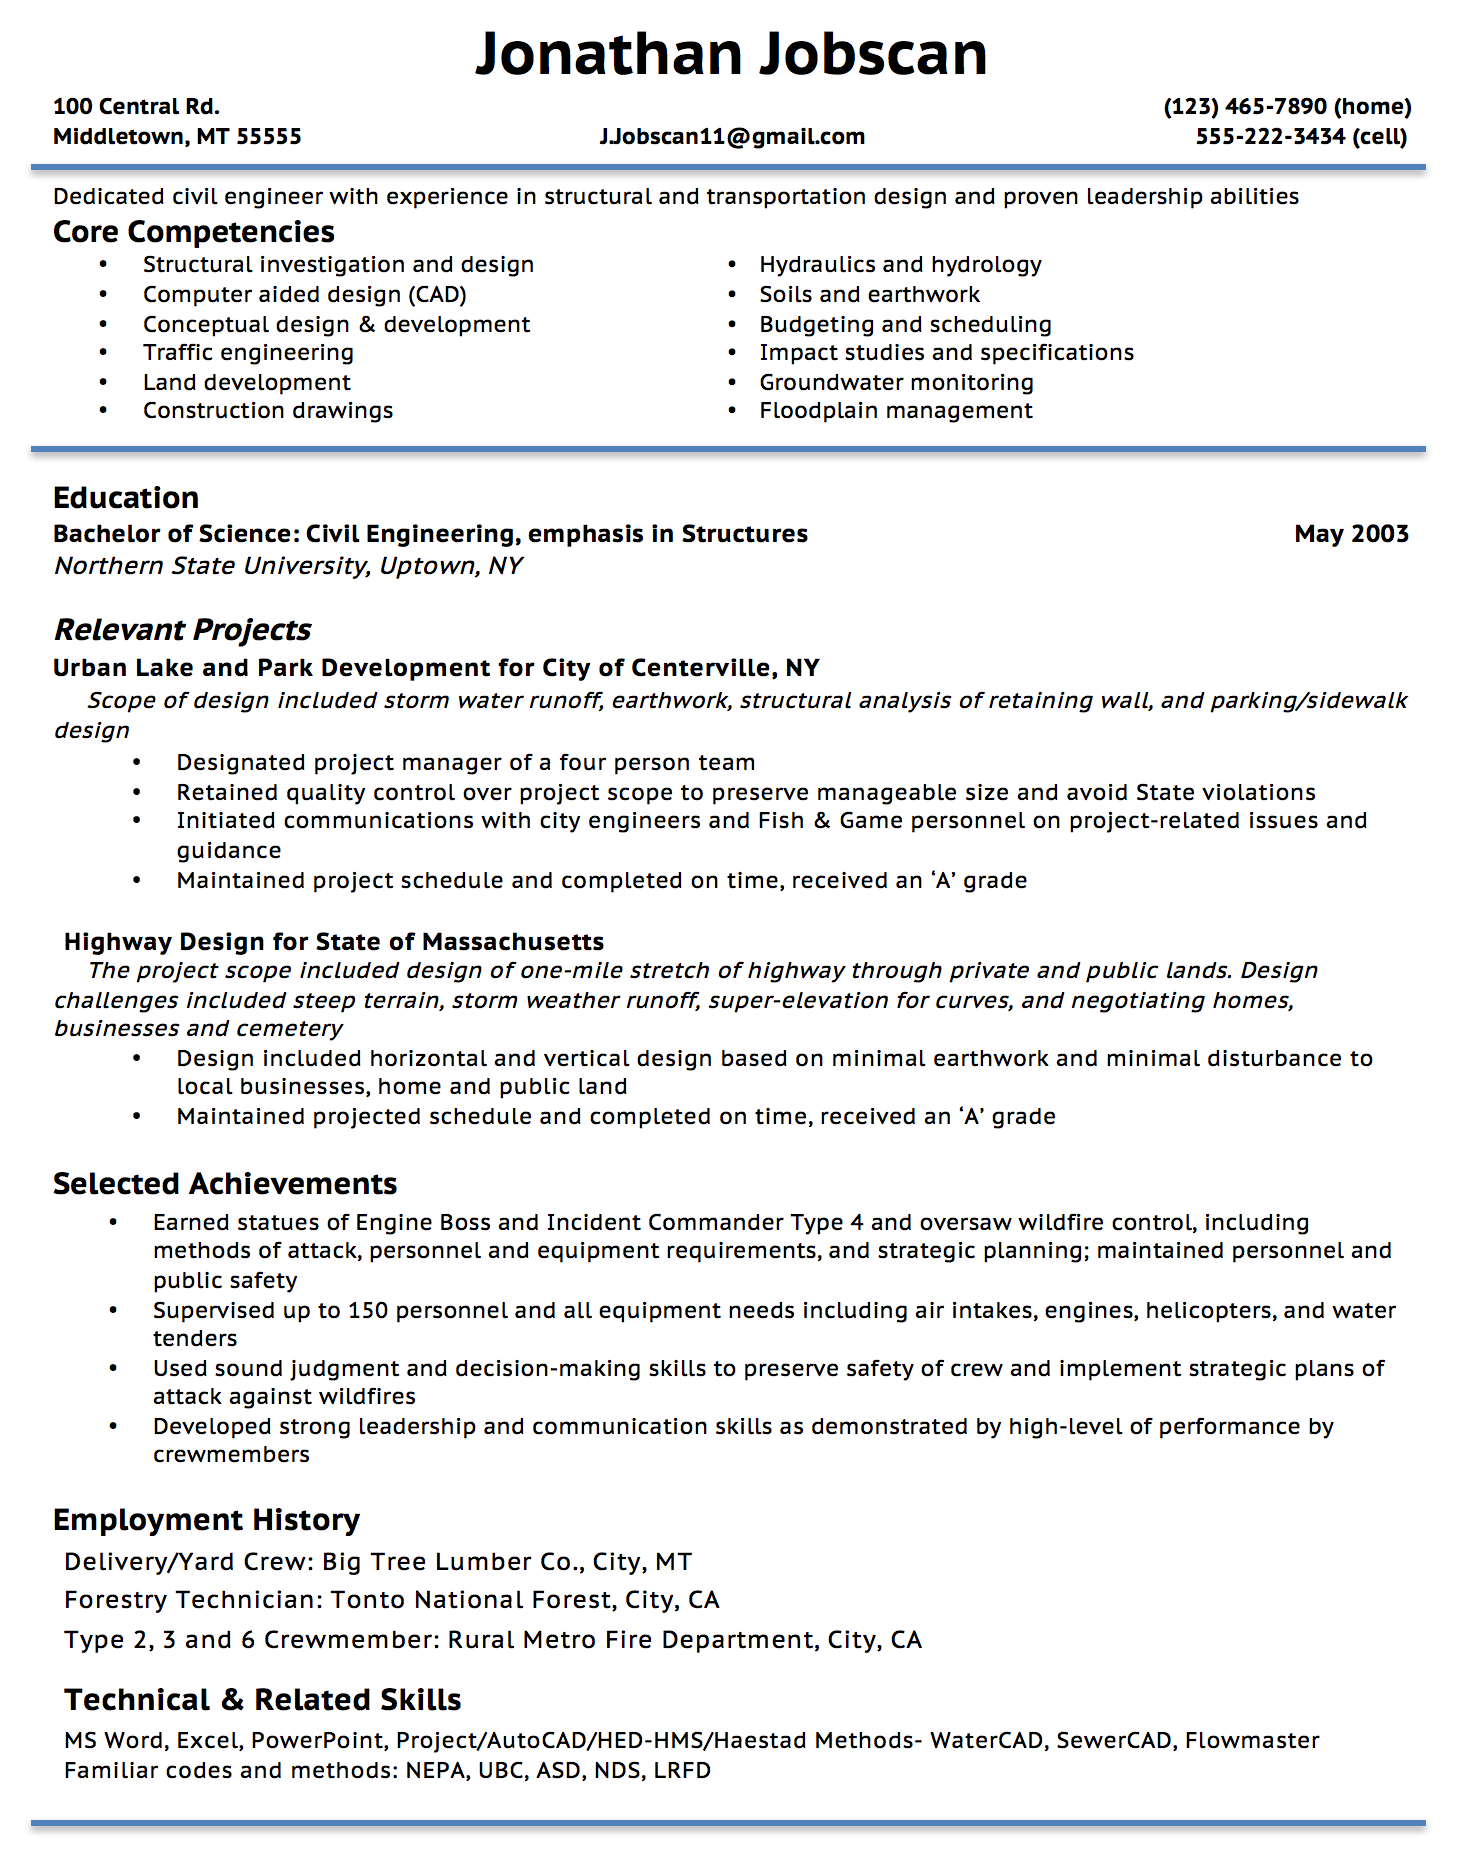 Opposenewapstandardsus  Remarkable Resume Writing Guide  Jobscan With Luxury Example Of A Functional Resume Format With Easy On The Eye Law School Resumes Also Quality Analyst Resume In Addition Case Management Resume And Usajobs Resume Sample As Well As Should I Include References On My Resume Additionally Easy Resume Template Free From Jobscanco With Opposenewapstandardsus  Luxury Resume Writing Guide  Jobscan With Easy On The Eye Example Of A Functional Resume Format And Remarkable Law School Resumes Also Quality Analyst Resume In Addition Case Management Resume From Jobscanco